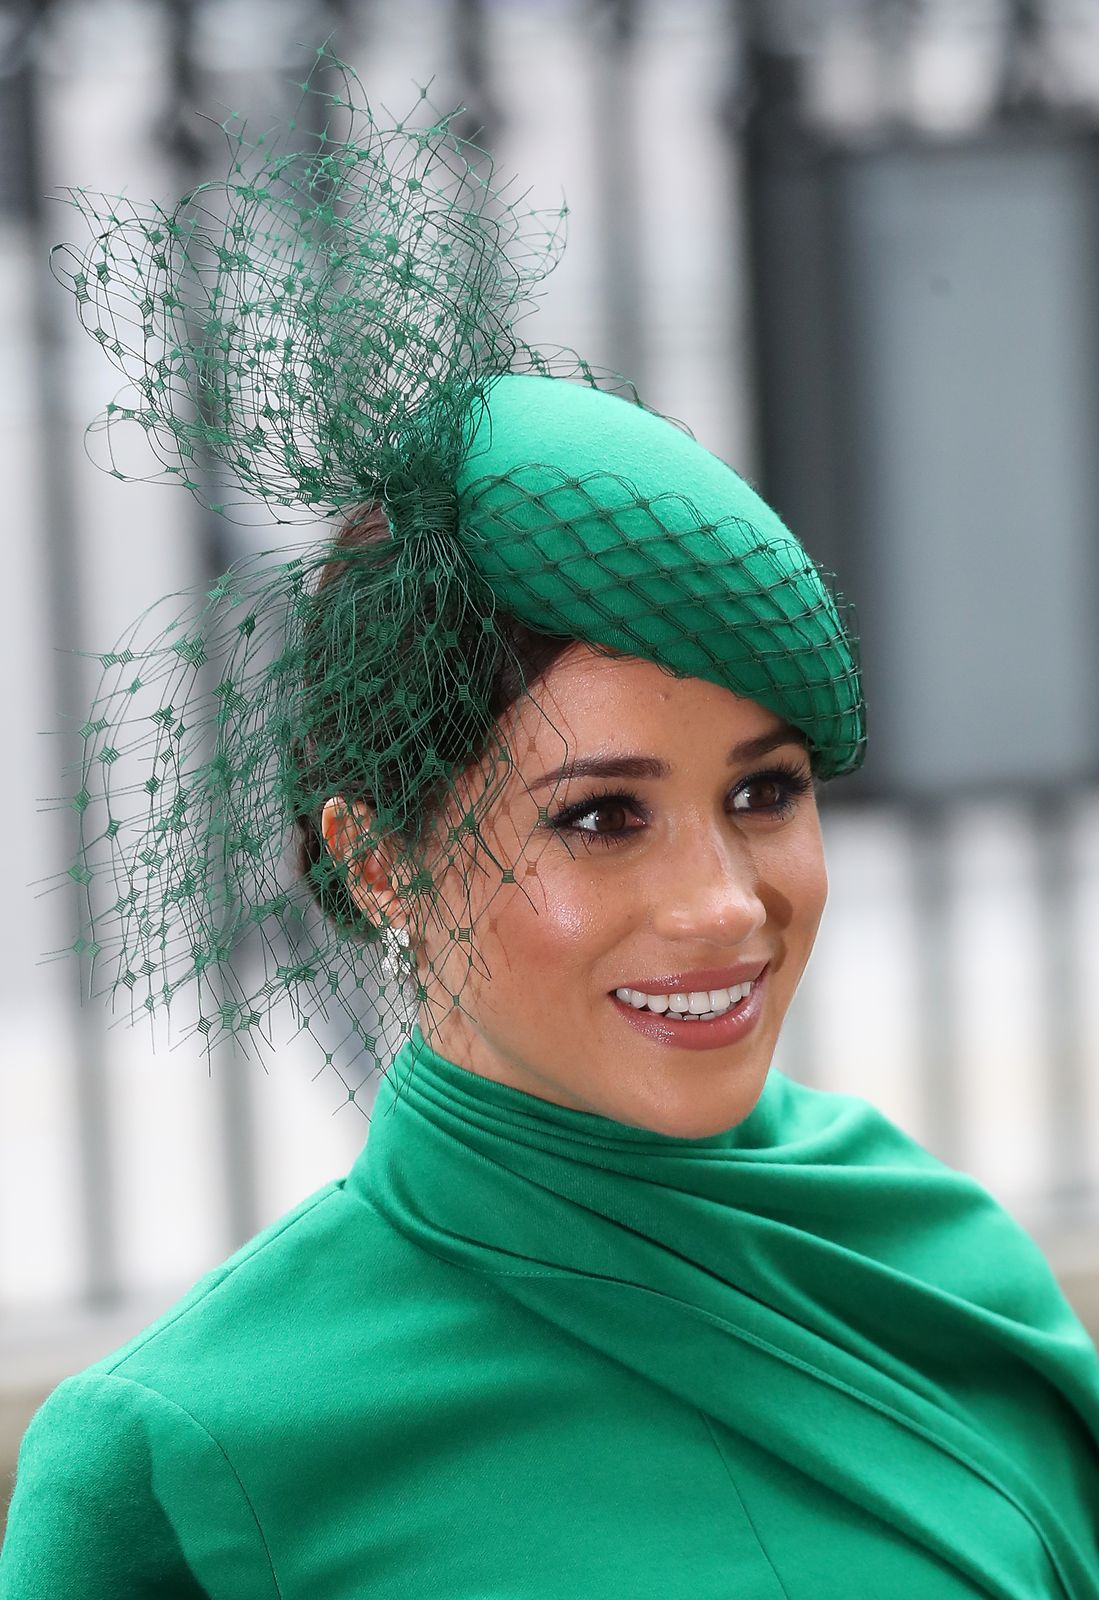 Meghan Markle attends the Commonwealth Day Service 2020 on March 09, 2020 | Getty Images